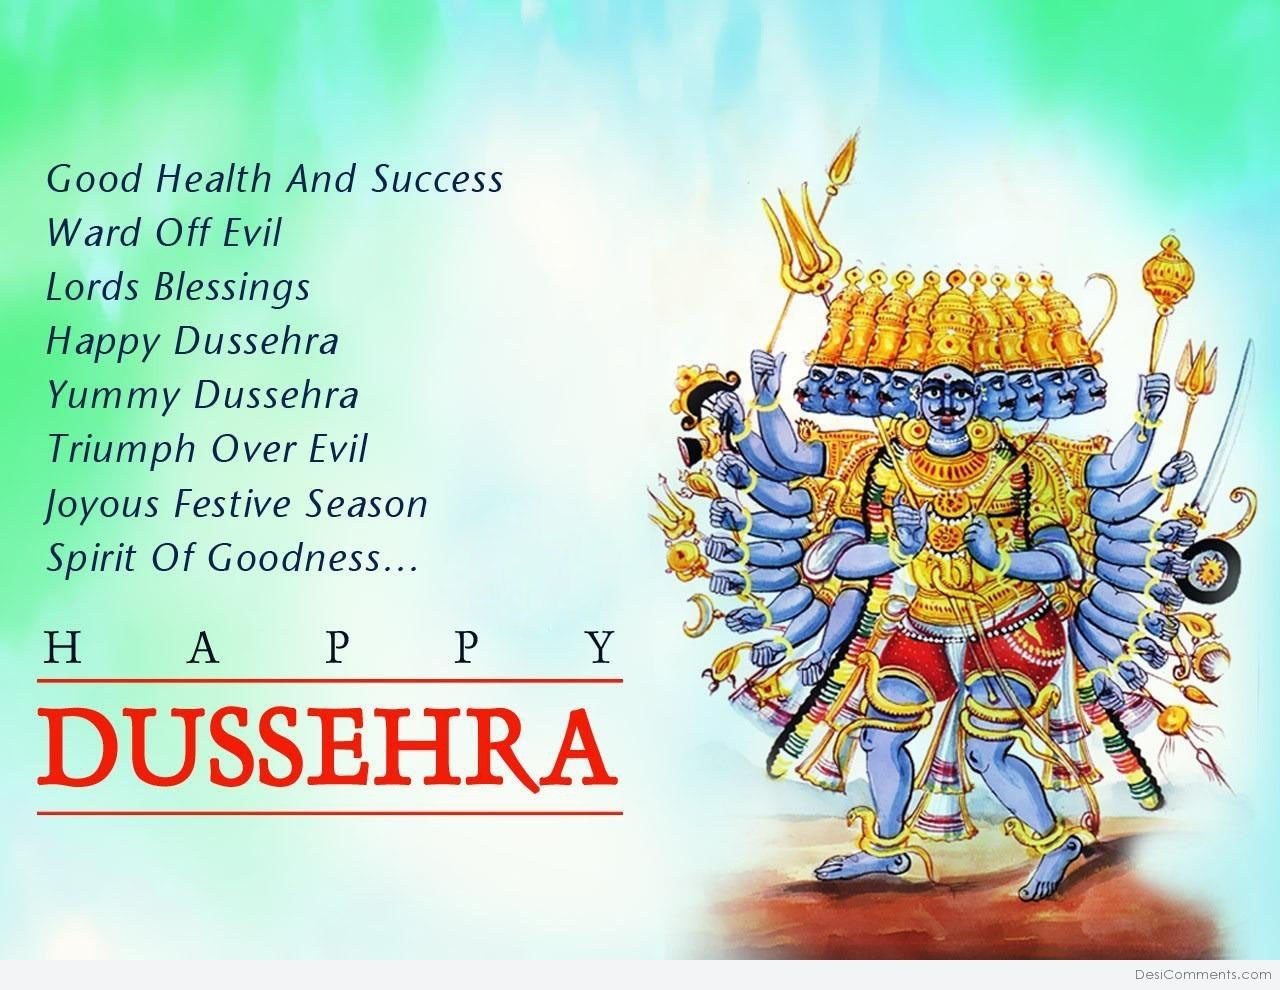 005 Essay On Dussehra Festival In English Surprising Full